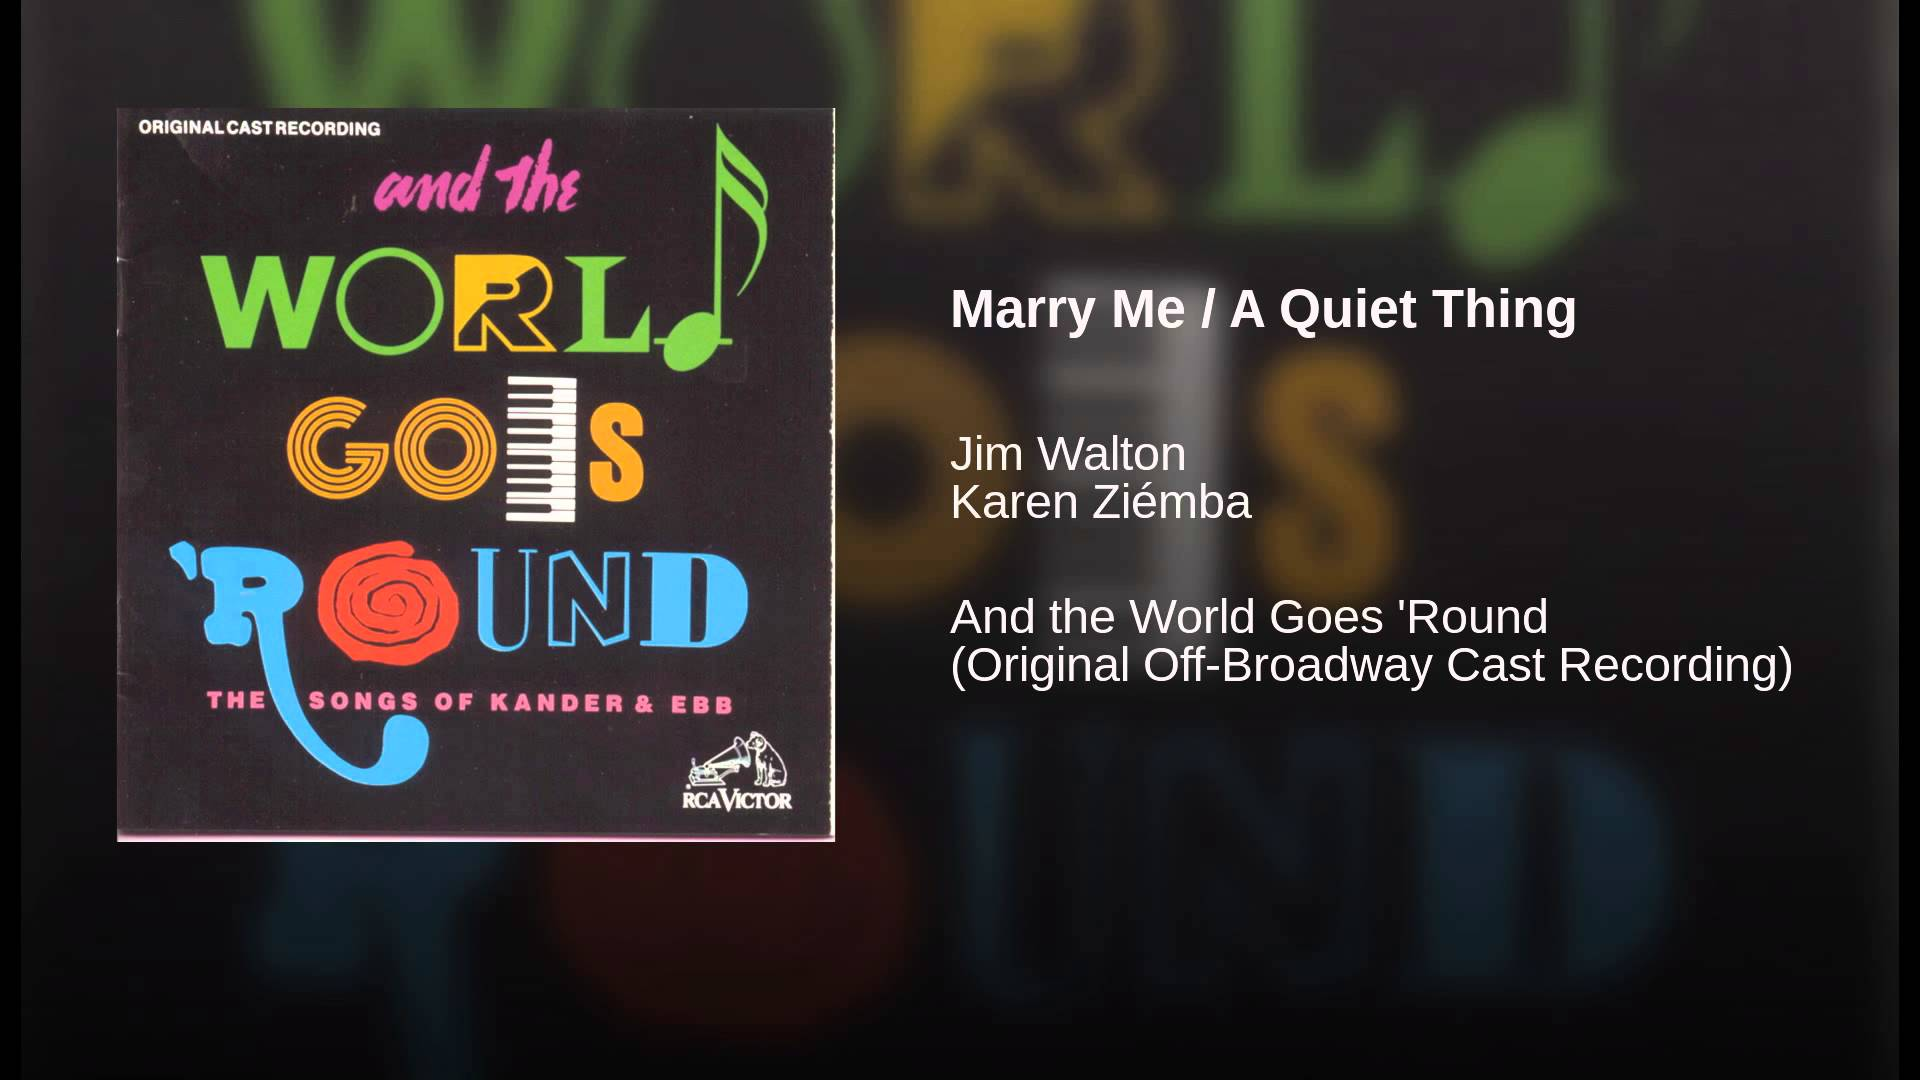 Kander & Ebb:  Marry Me / A Quiet Thing